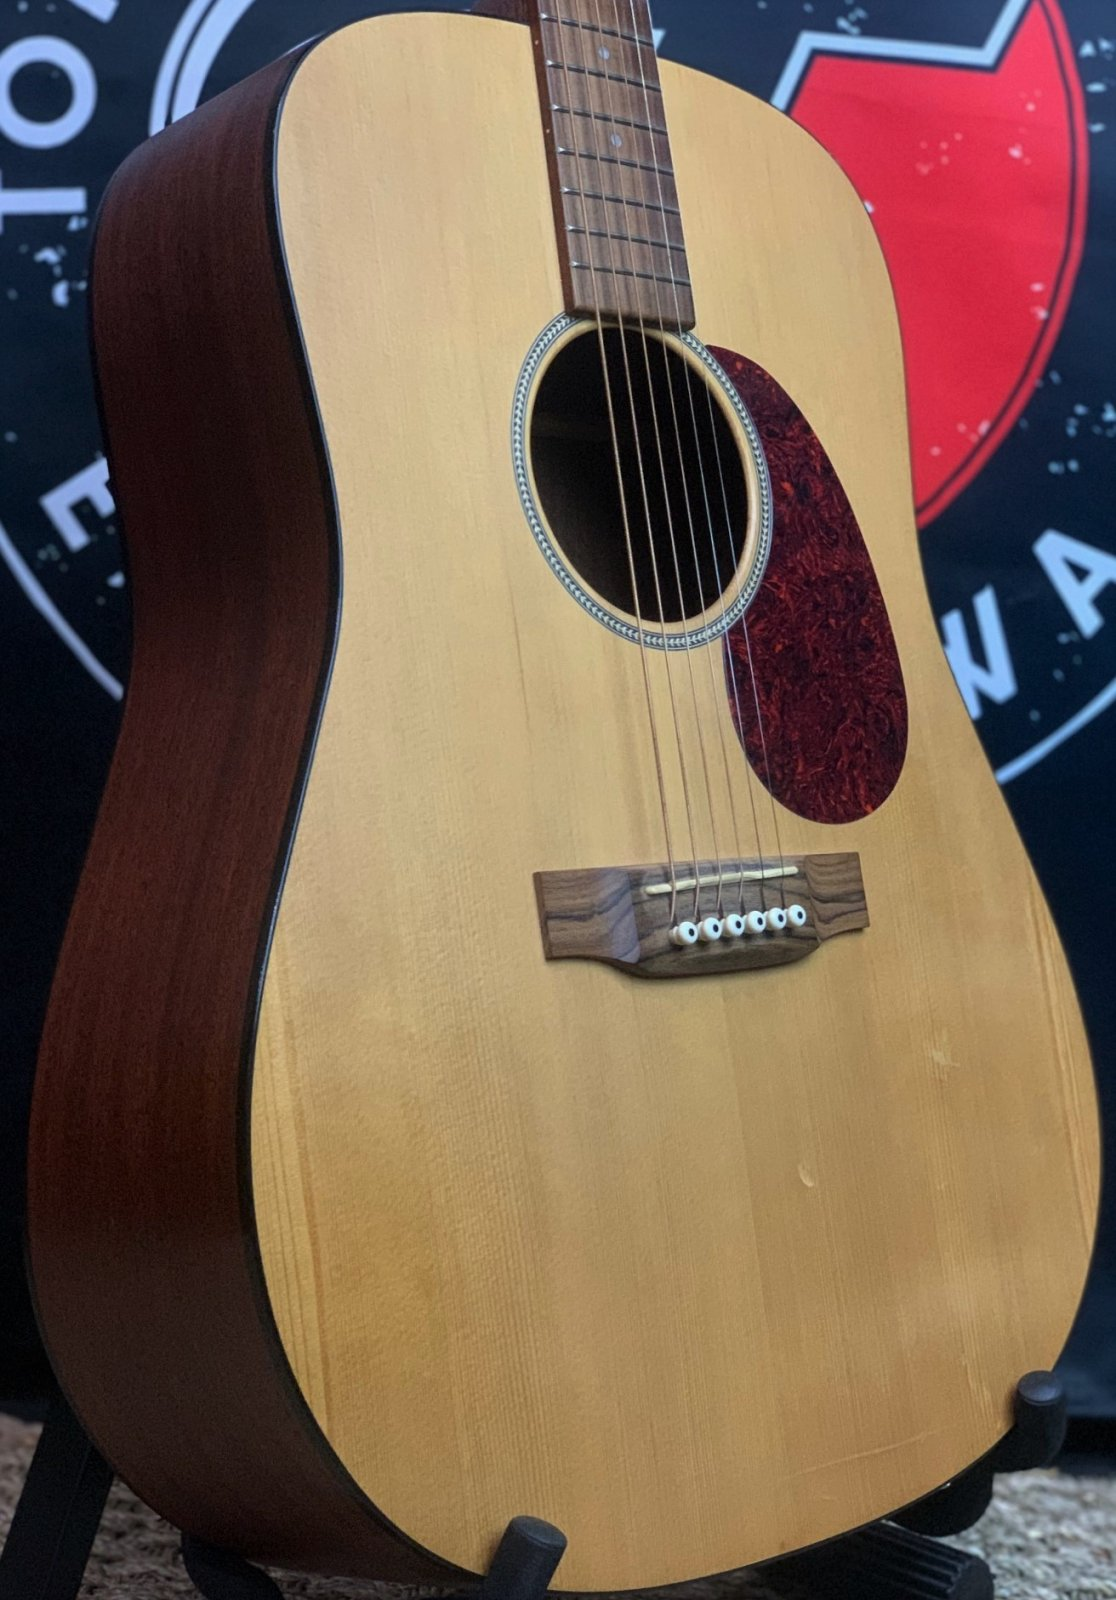 Martin DM USA Mahogany Dreadnought w/Gator GB